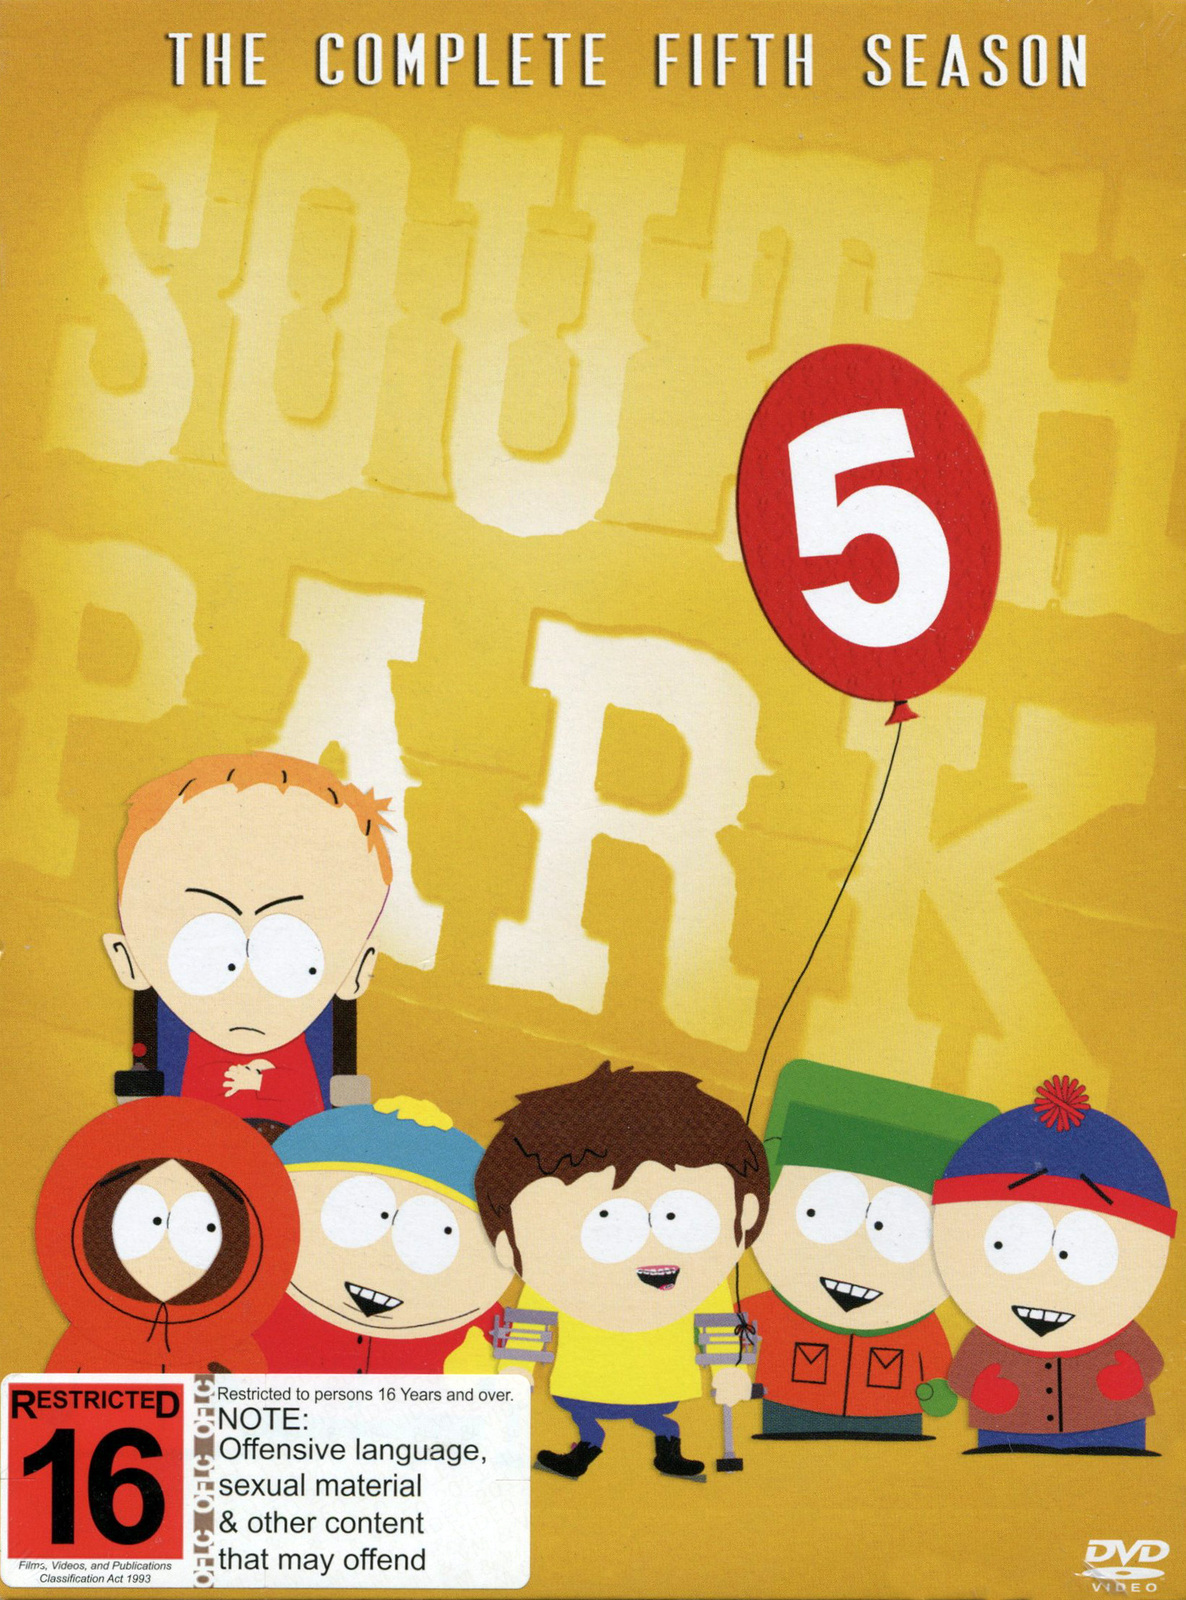 South Park - The Complete 5th Season (3 Disc Box Set) on DVD image